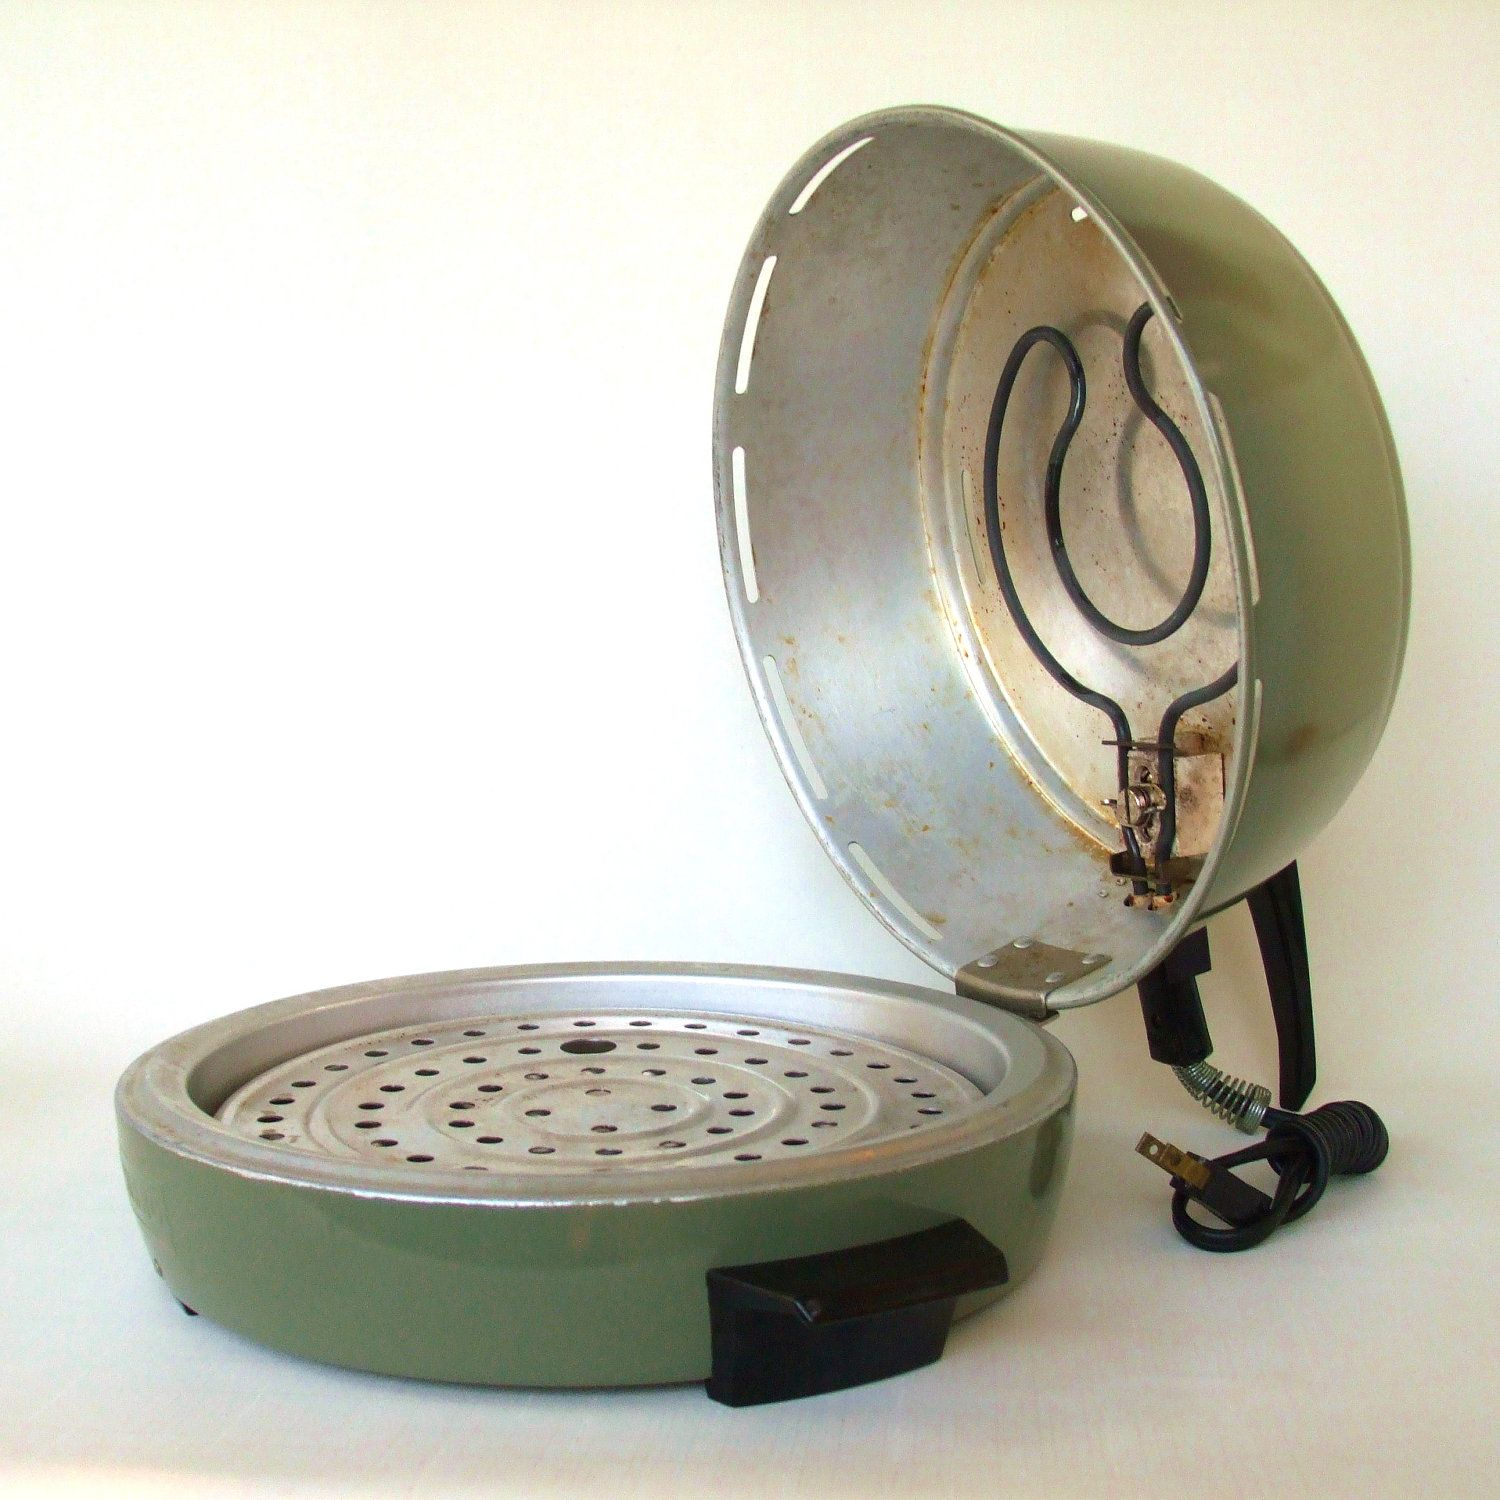 Mirro Electric Broiler Oven Vintage Kitchen Appliance